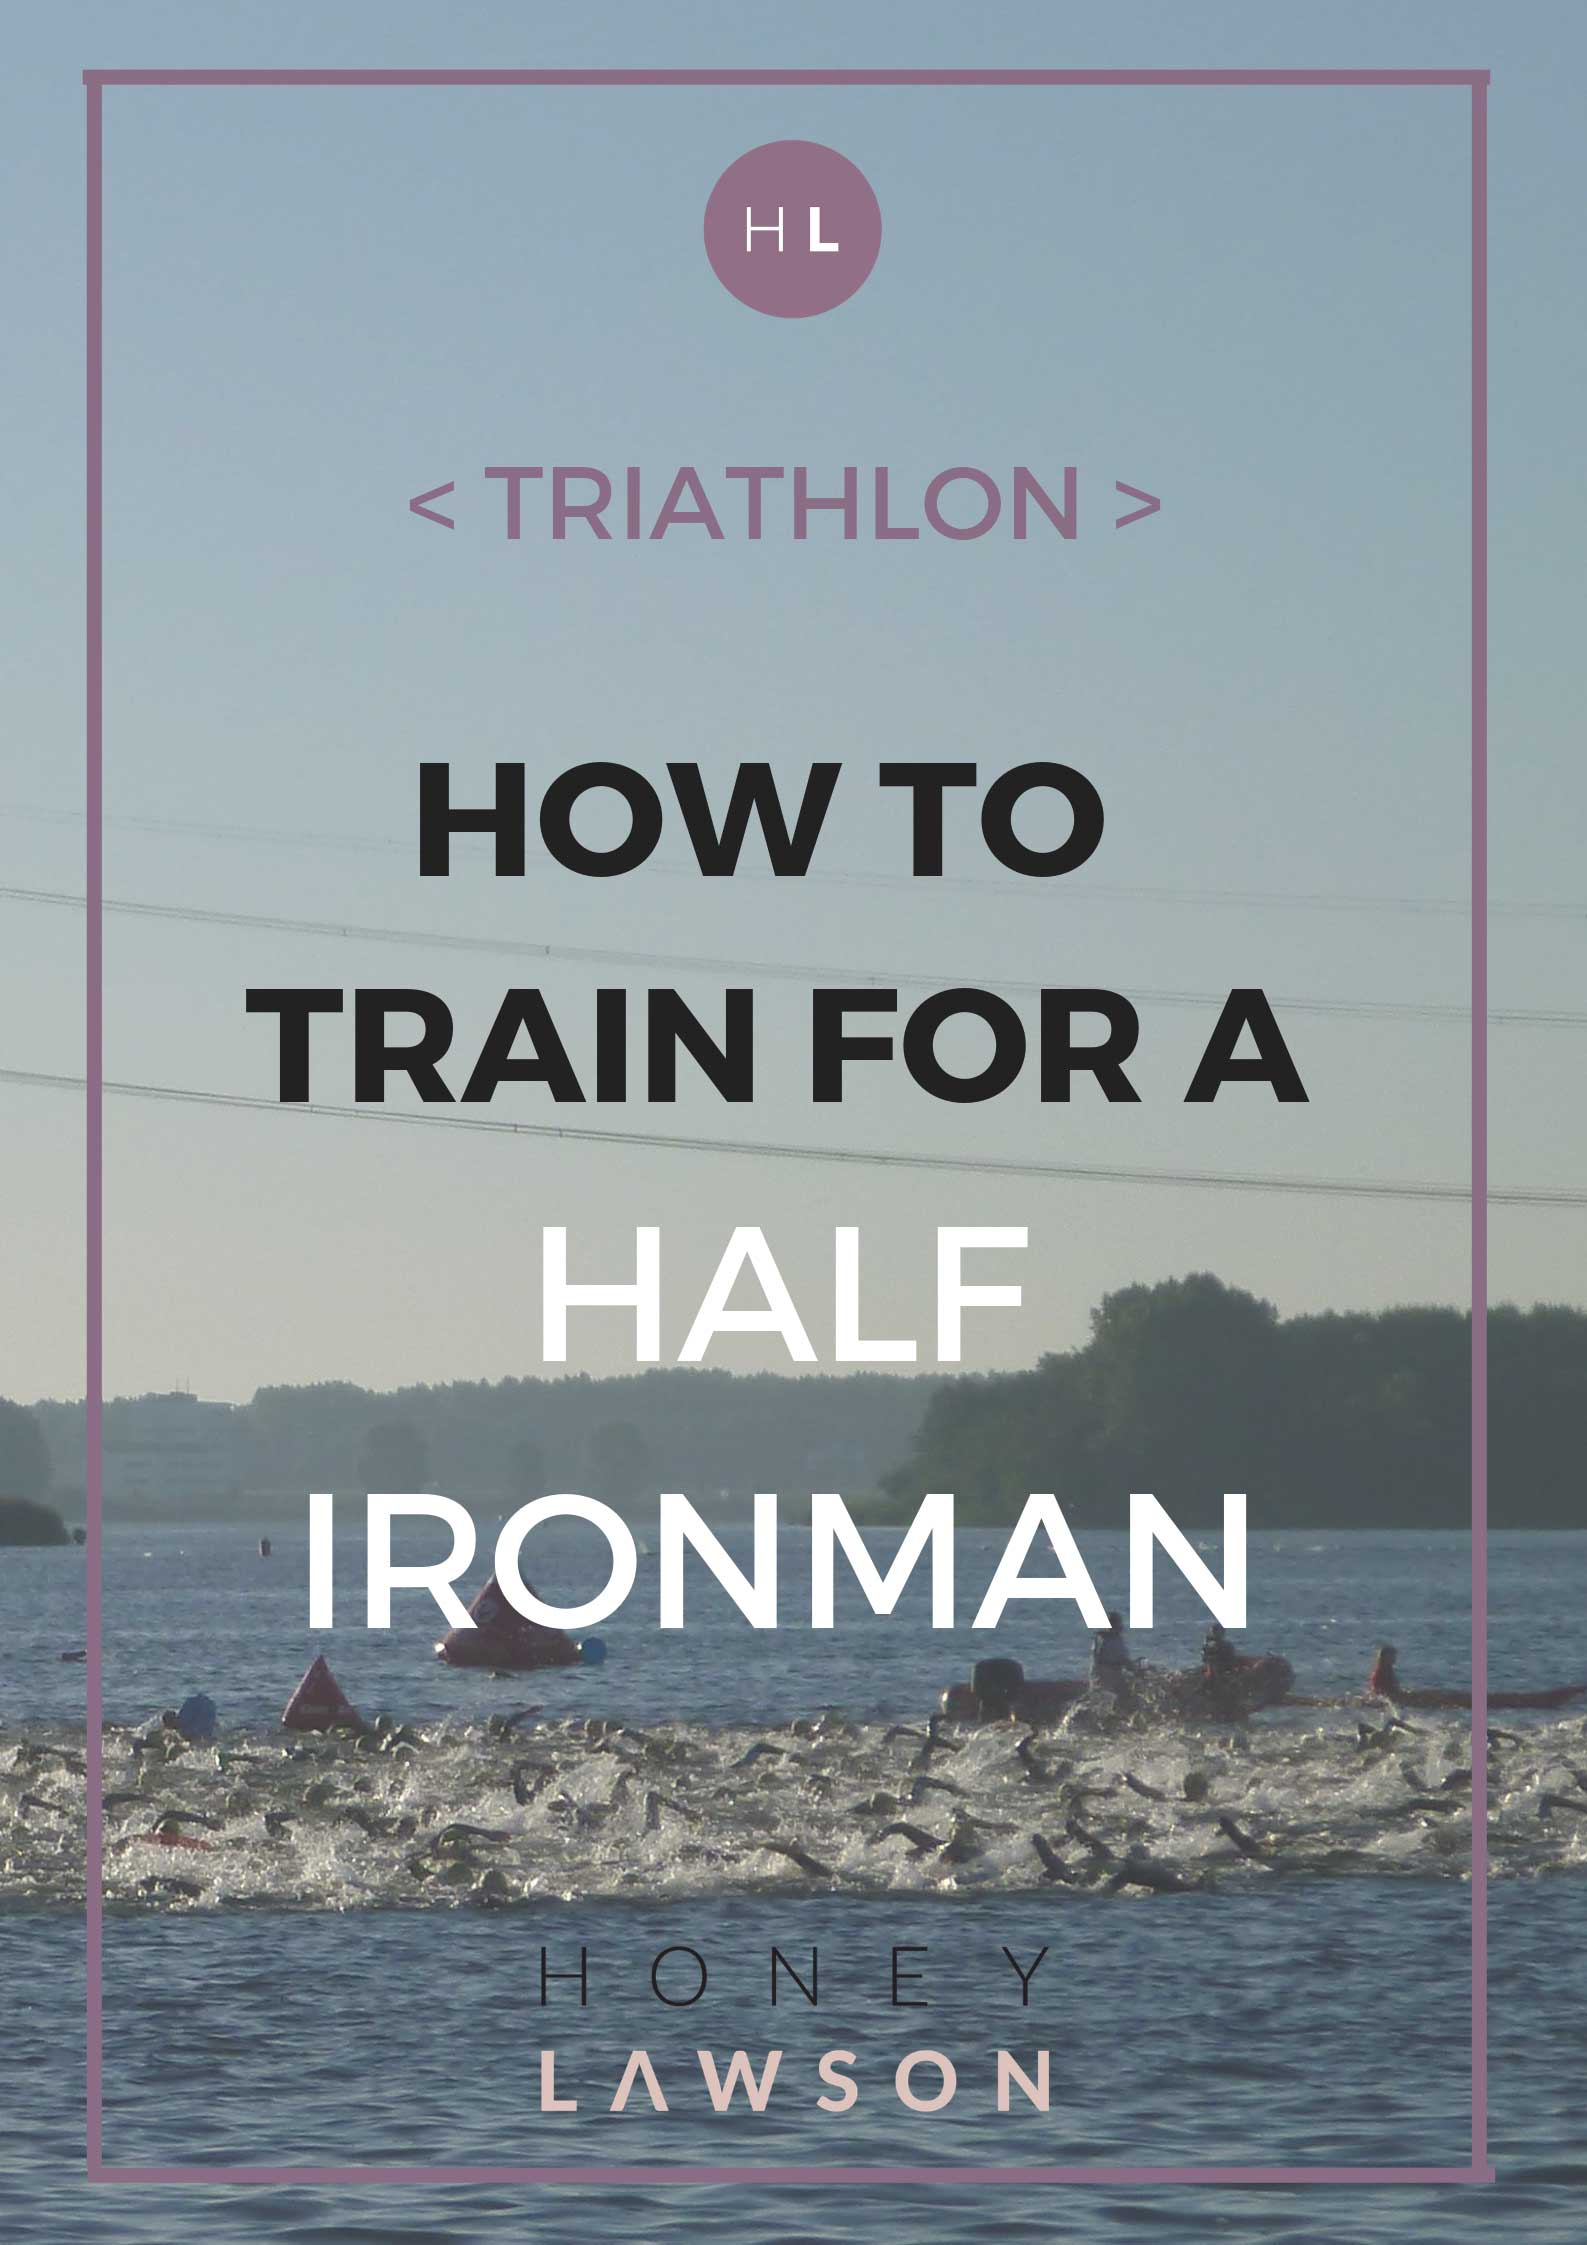 How-to-train-for-a-Half-ironman